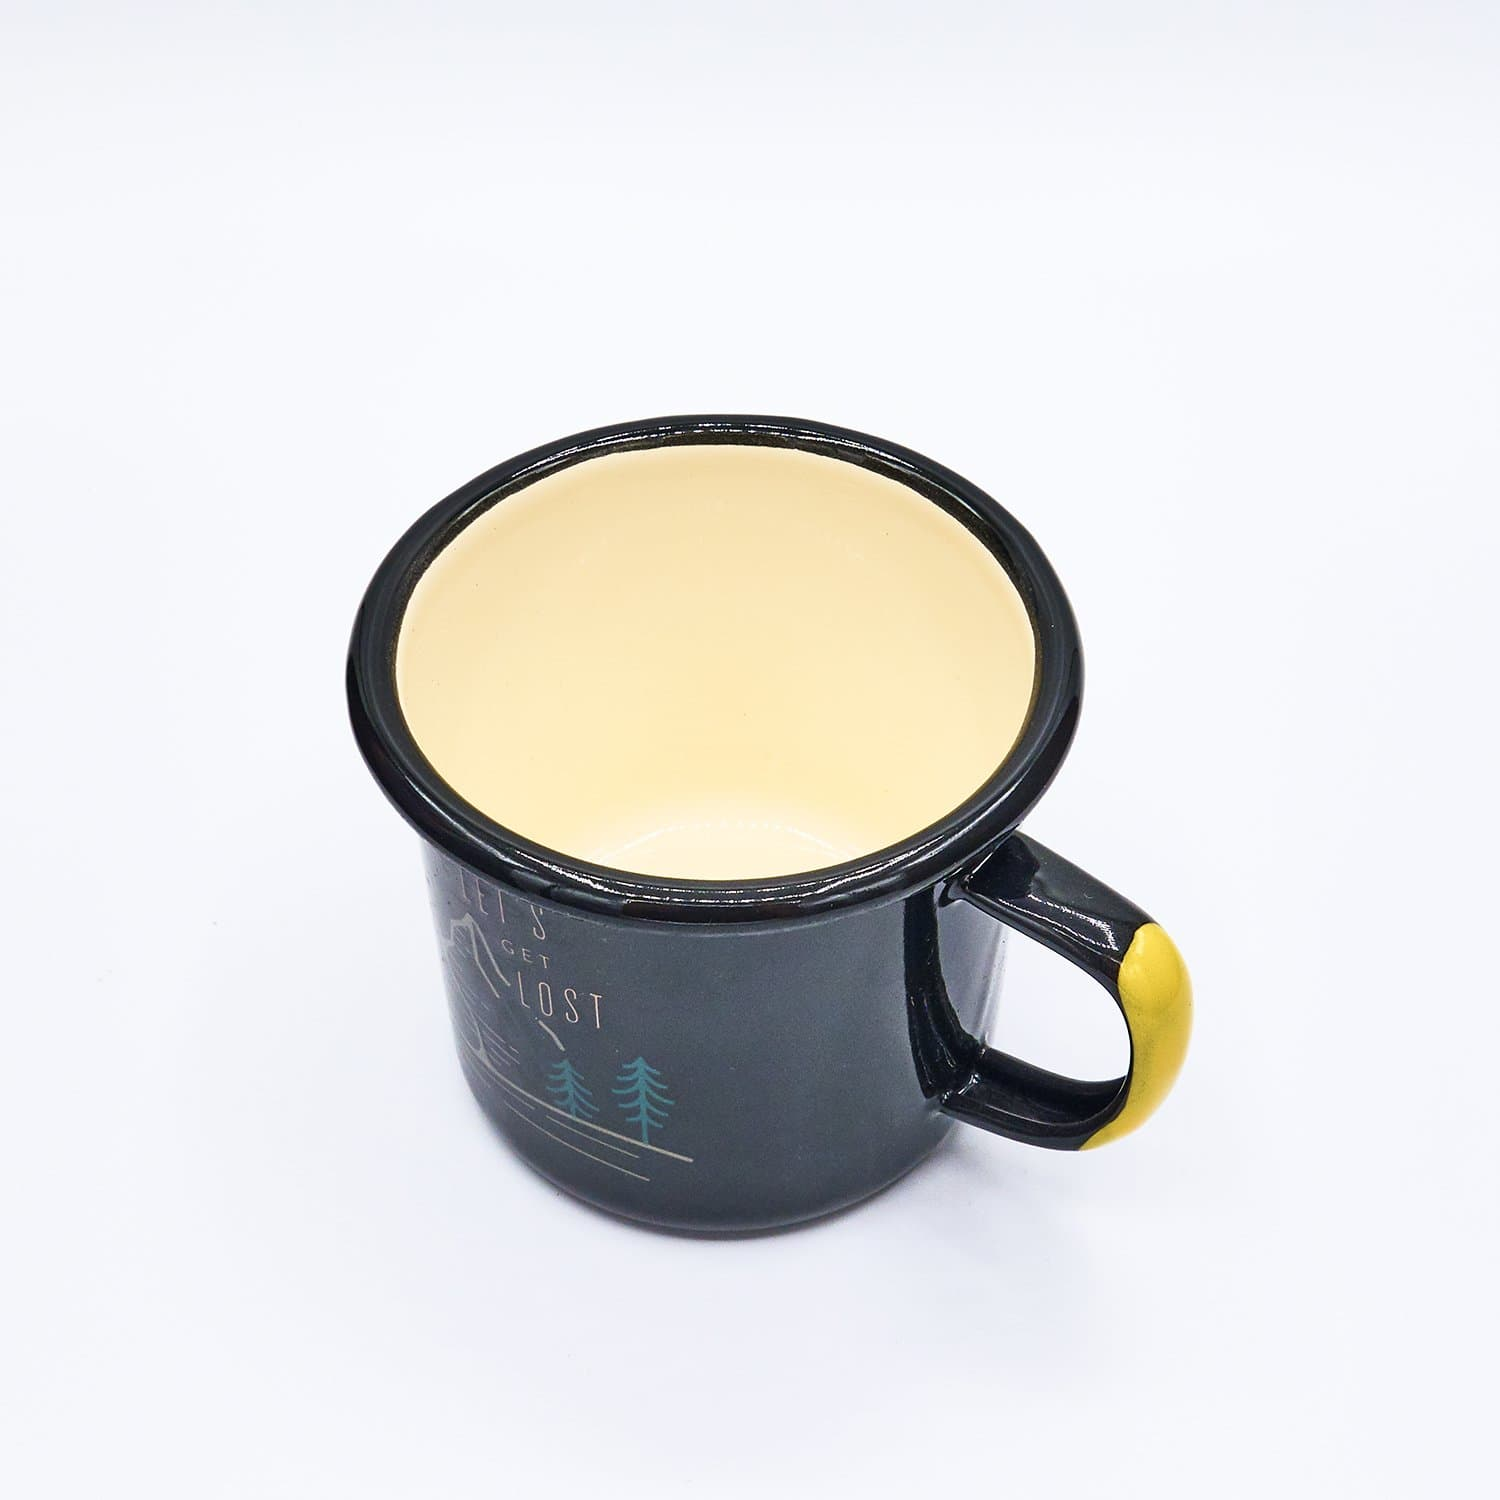 Get Lost Mug Black Enamel, Mug, Dishwasher Safe, Enamel Mug